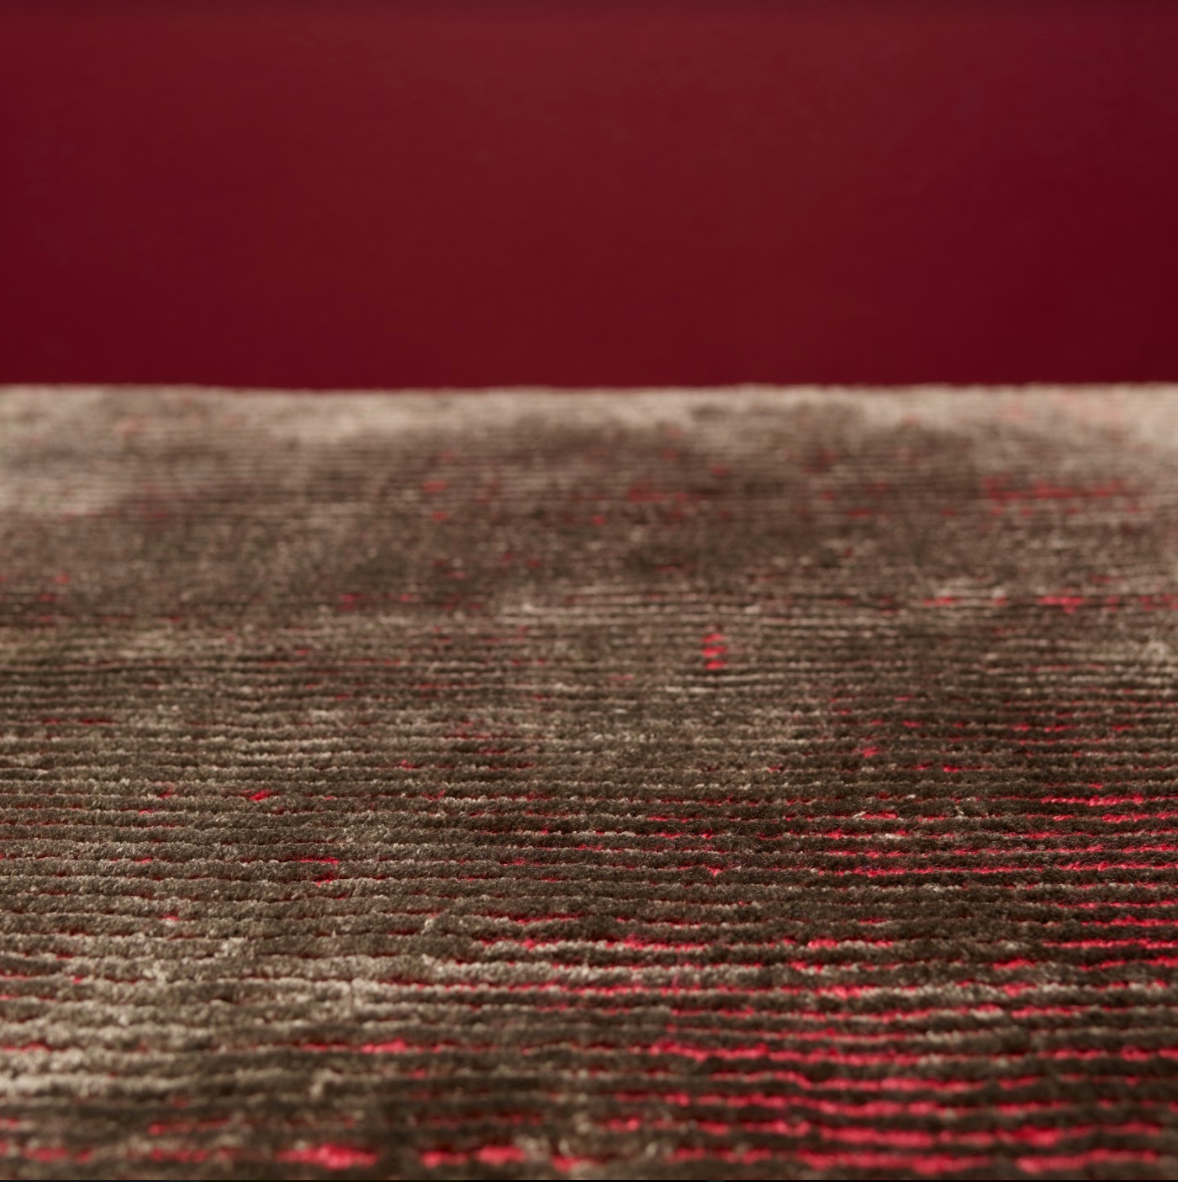 We draw inspiration for our shades of red from Bram Bogart! The brown with a hint of red is an excellent choice if you want something more subtle.   #interiordesign #luxuryinteriordesign #luxuryinteriordesignin spiration #happyfeet #furniture #room #roomcolors #roomdesign #luxuryhomedesign #homedecorcolors #bomat #luxurycarpetprojectpictures #luxuryinspiration #creativeinspiration #artistinspiration #creativearts #redcarpet